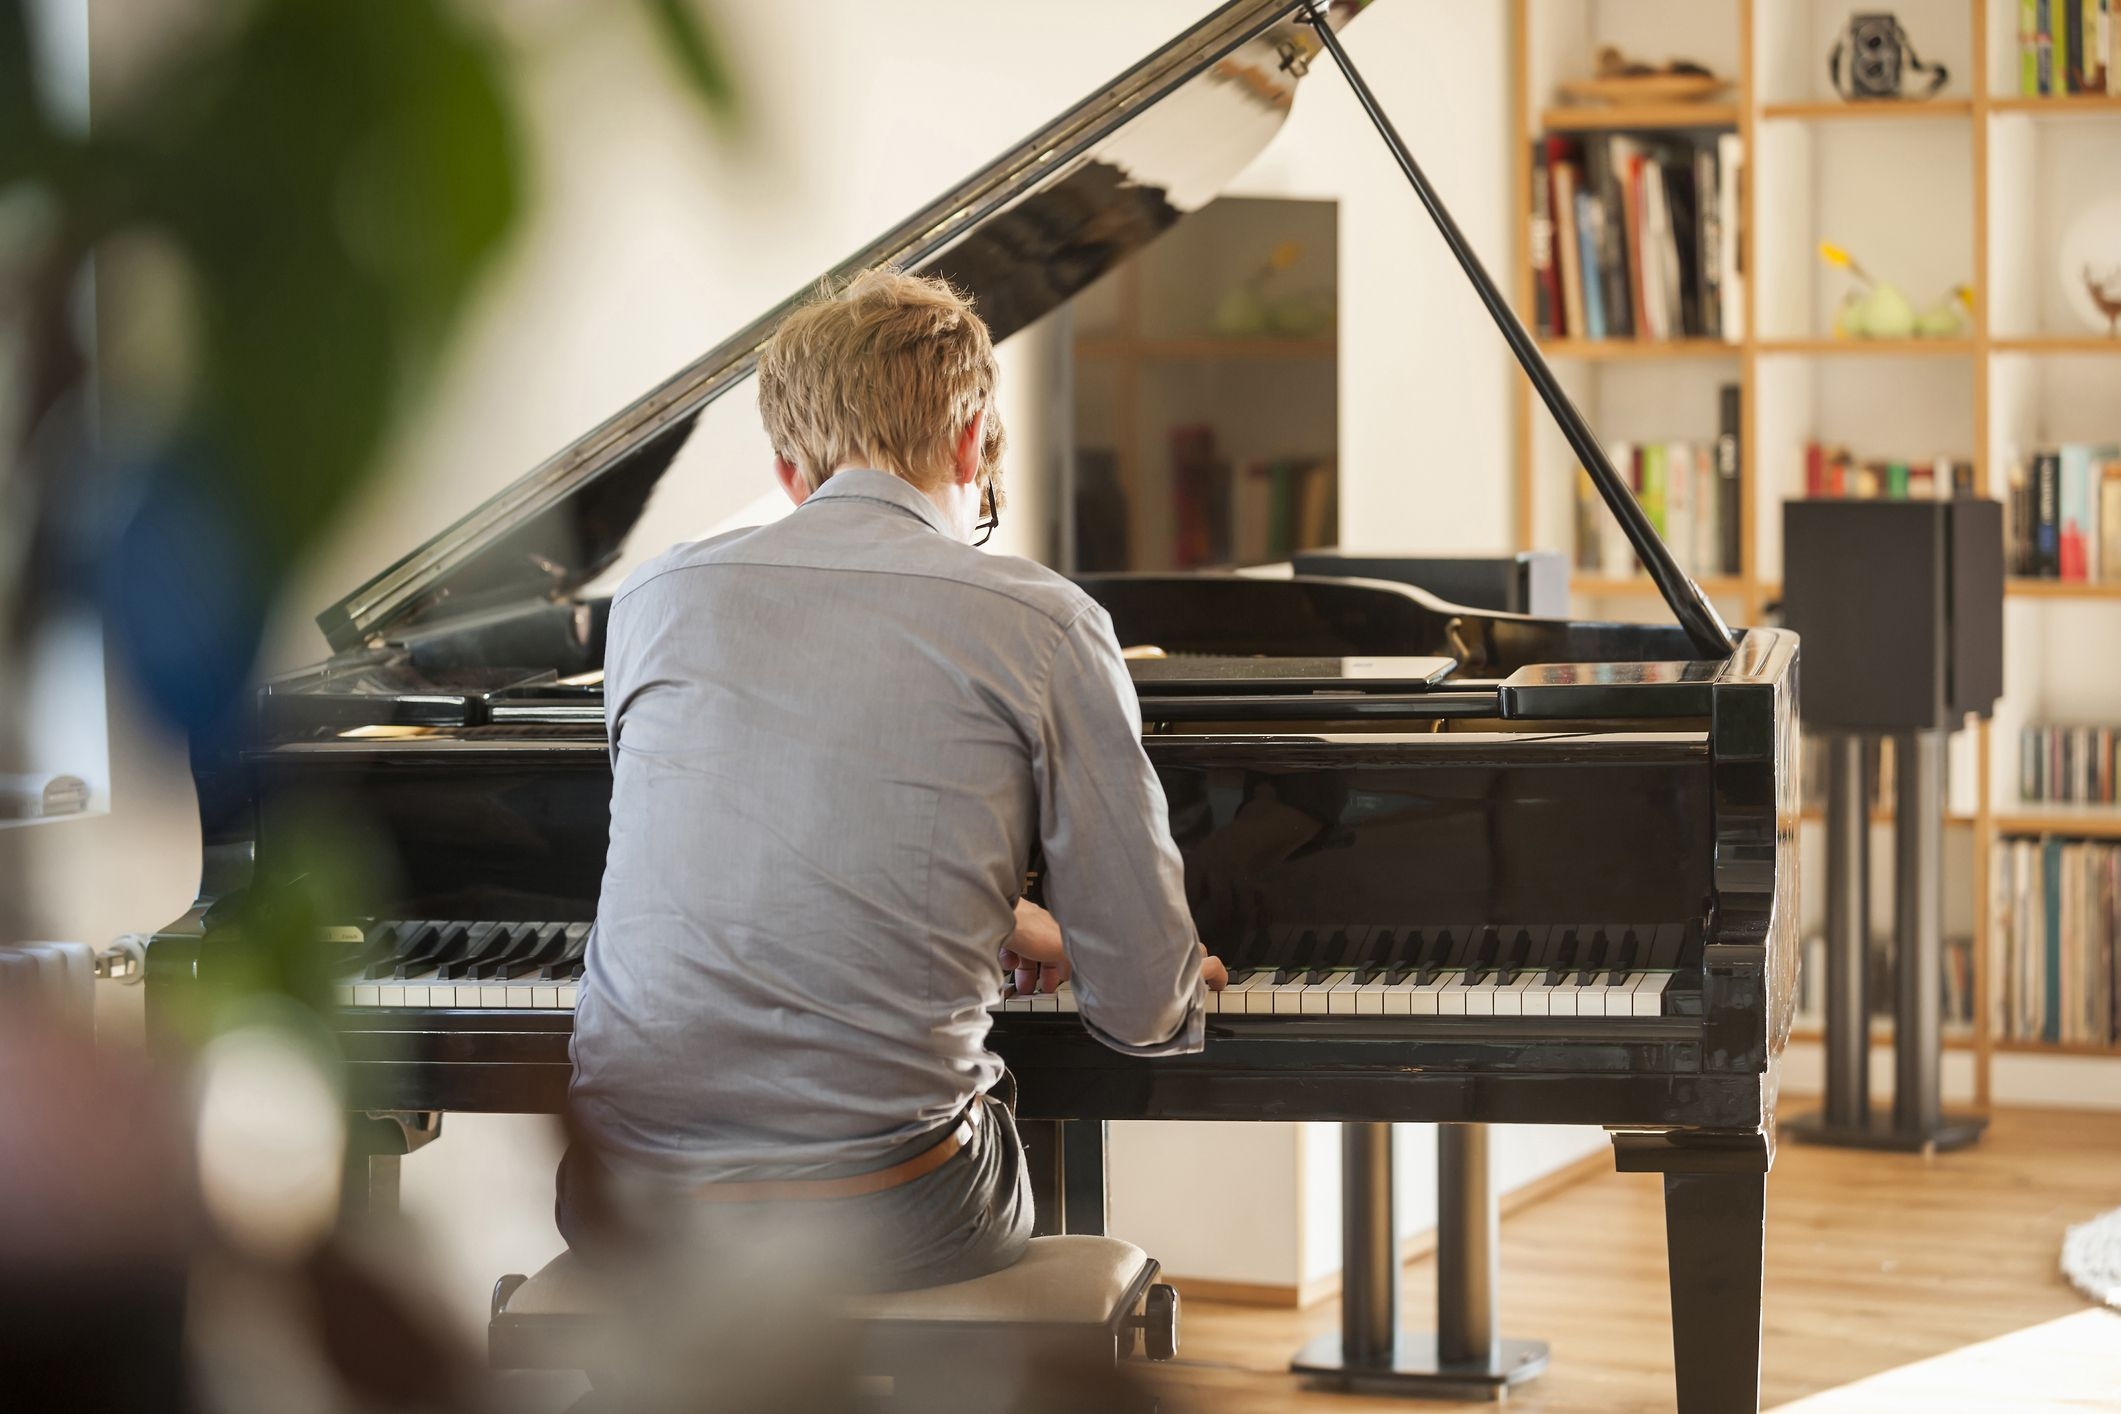 Apartment Piano Playing: Minimize Neighbor Problems